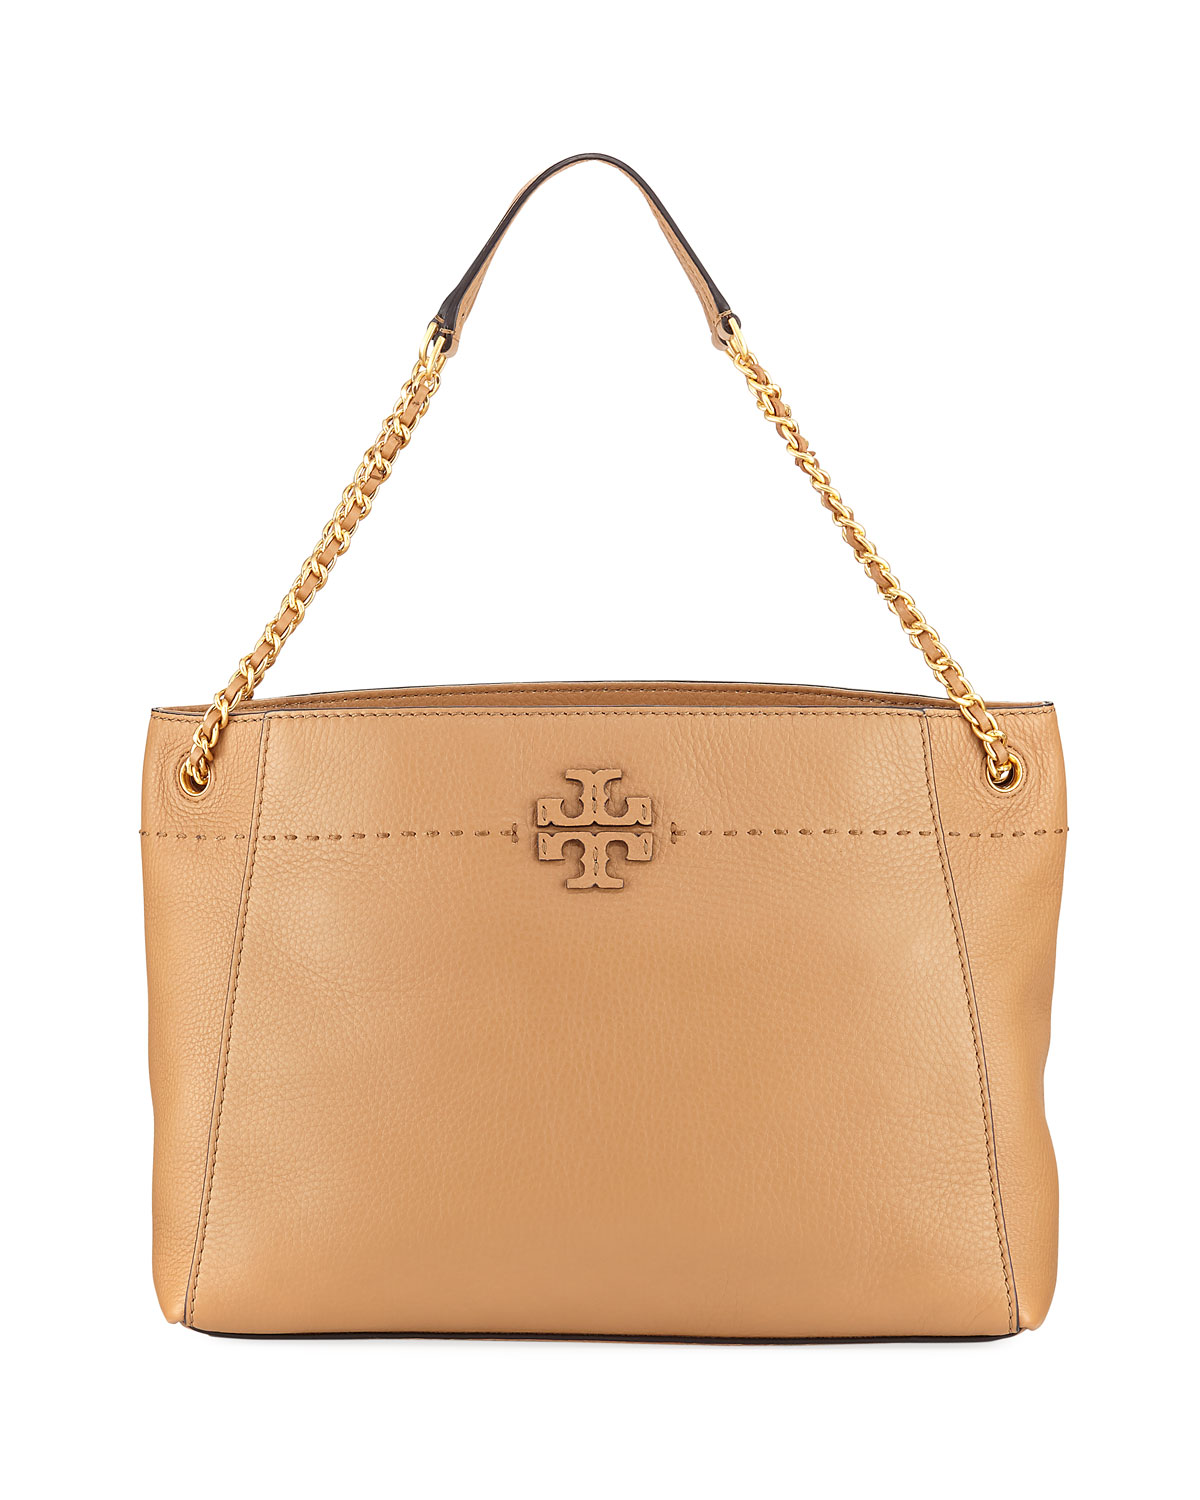 d31097155a33 Tory Burch McGraw Woven Chain Slouchy Tote Bag